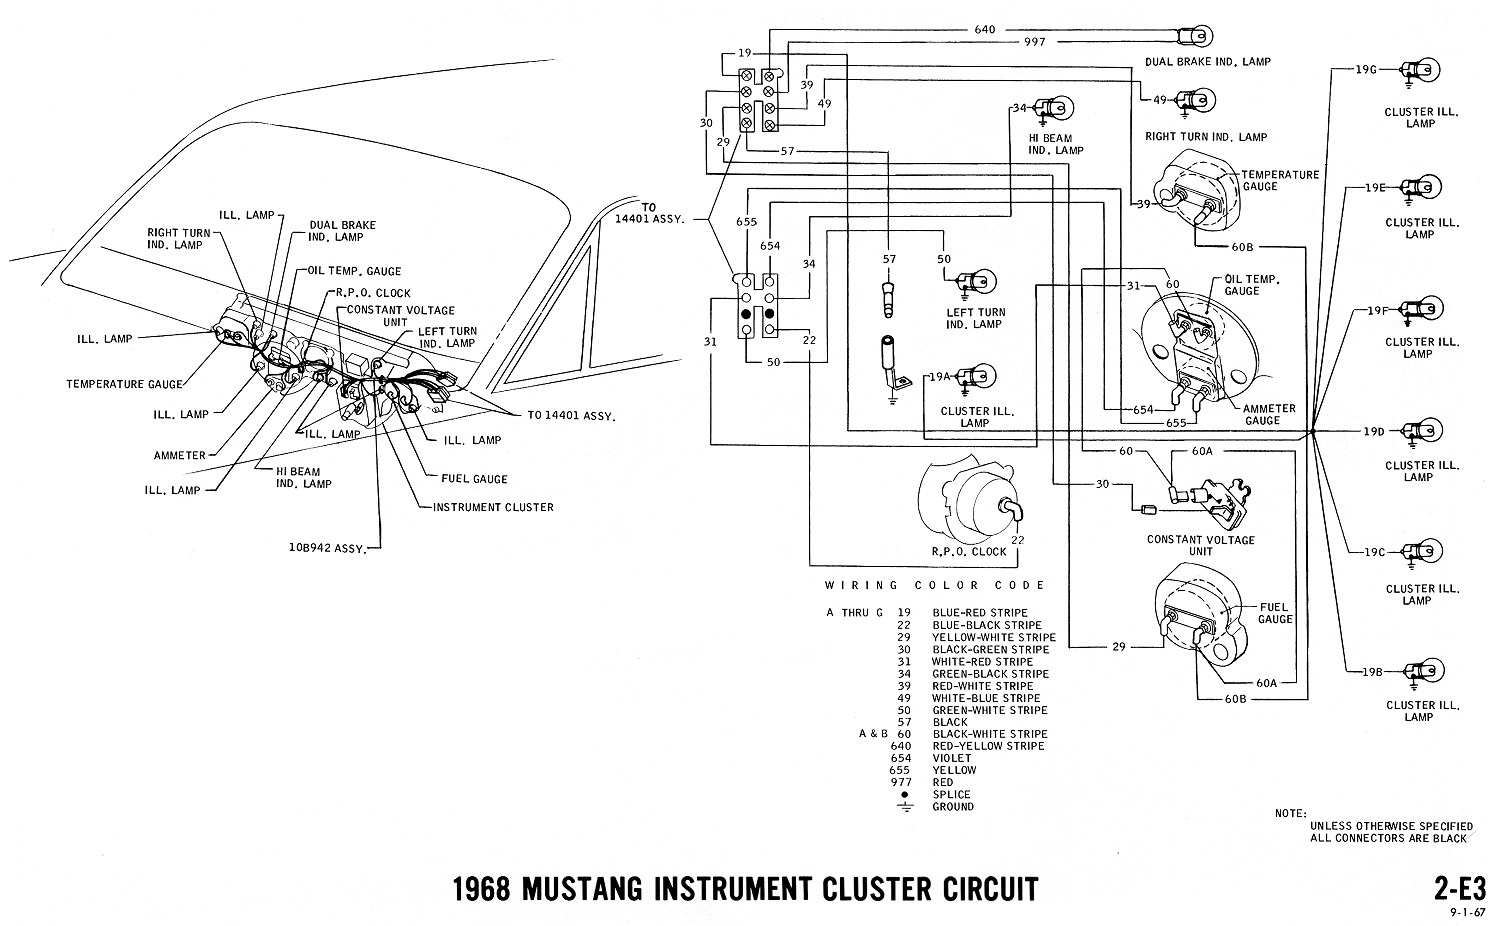 Dash Wiring Diagram 1968 - Wiring Data Diagram on dodge 3500 wiring diagram, dodge dakota wiring diagram, dodge challenger fuel tank, dodge challenger amp location, dodge omni wiring diagram, dodge m37 wiring diagram, dodge viper wiring diagram, dodge challenger rear bumper removal, dodge challenger engine diagram, dodge challenger speaker, dodge challenger air cleaner, dodge d150 wiring diagram, dodge d100 wiring diagram, chrysler dodge wiring diagram, dodge challenger outline drawing, dodge durango wiring diagram, dodge magnum wiring diagram, 1955 dodge wiring diagram, dodge pickup wiring diagram, dodge w150 wiring diagram,